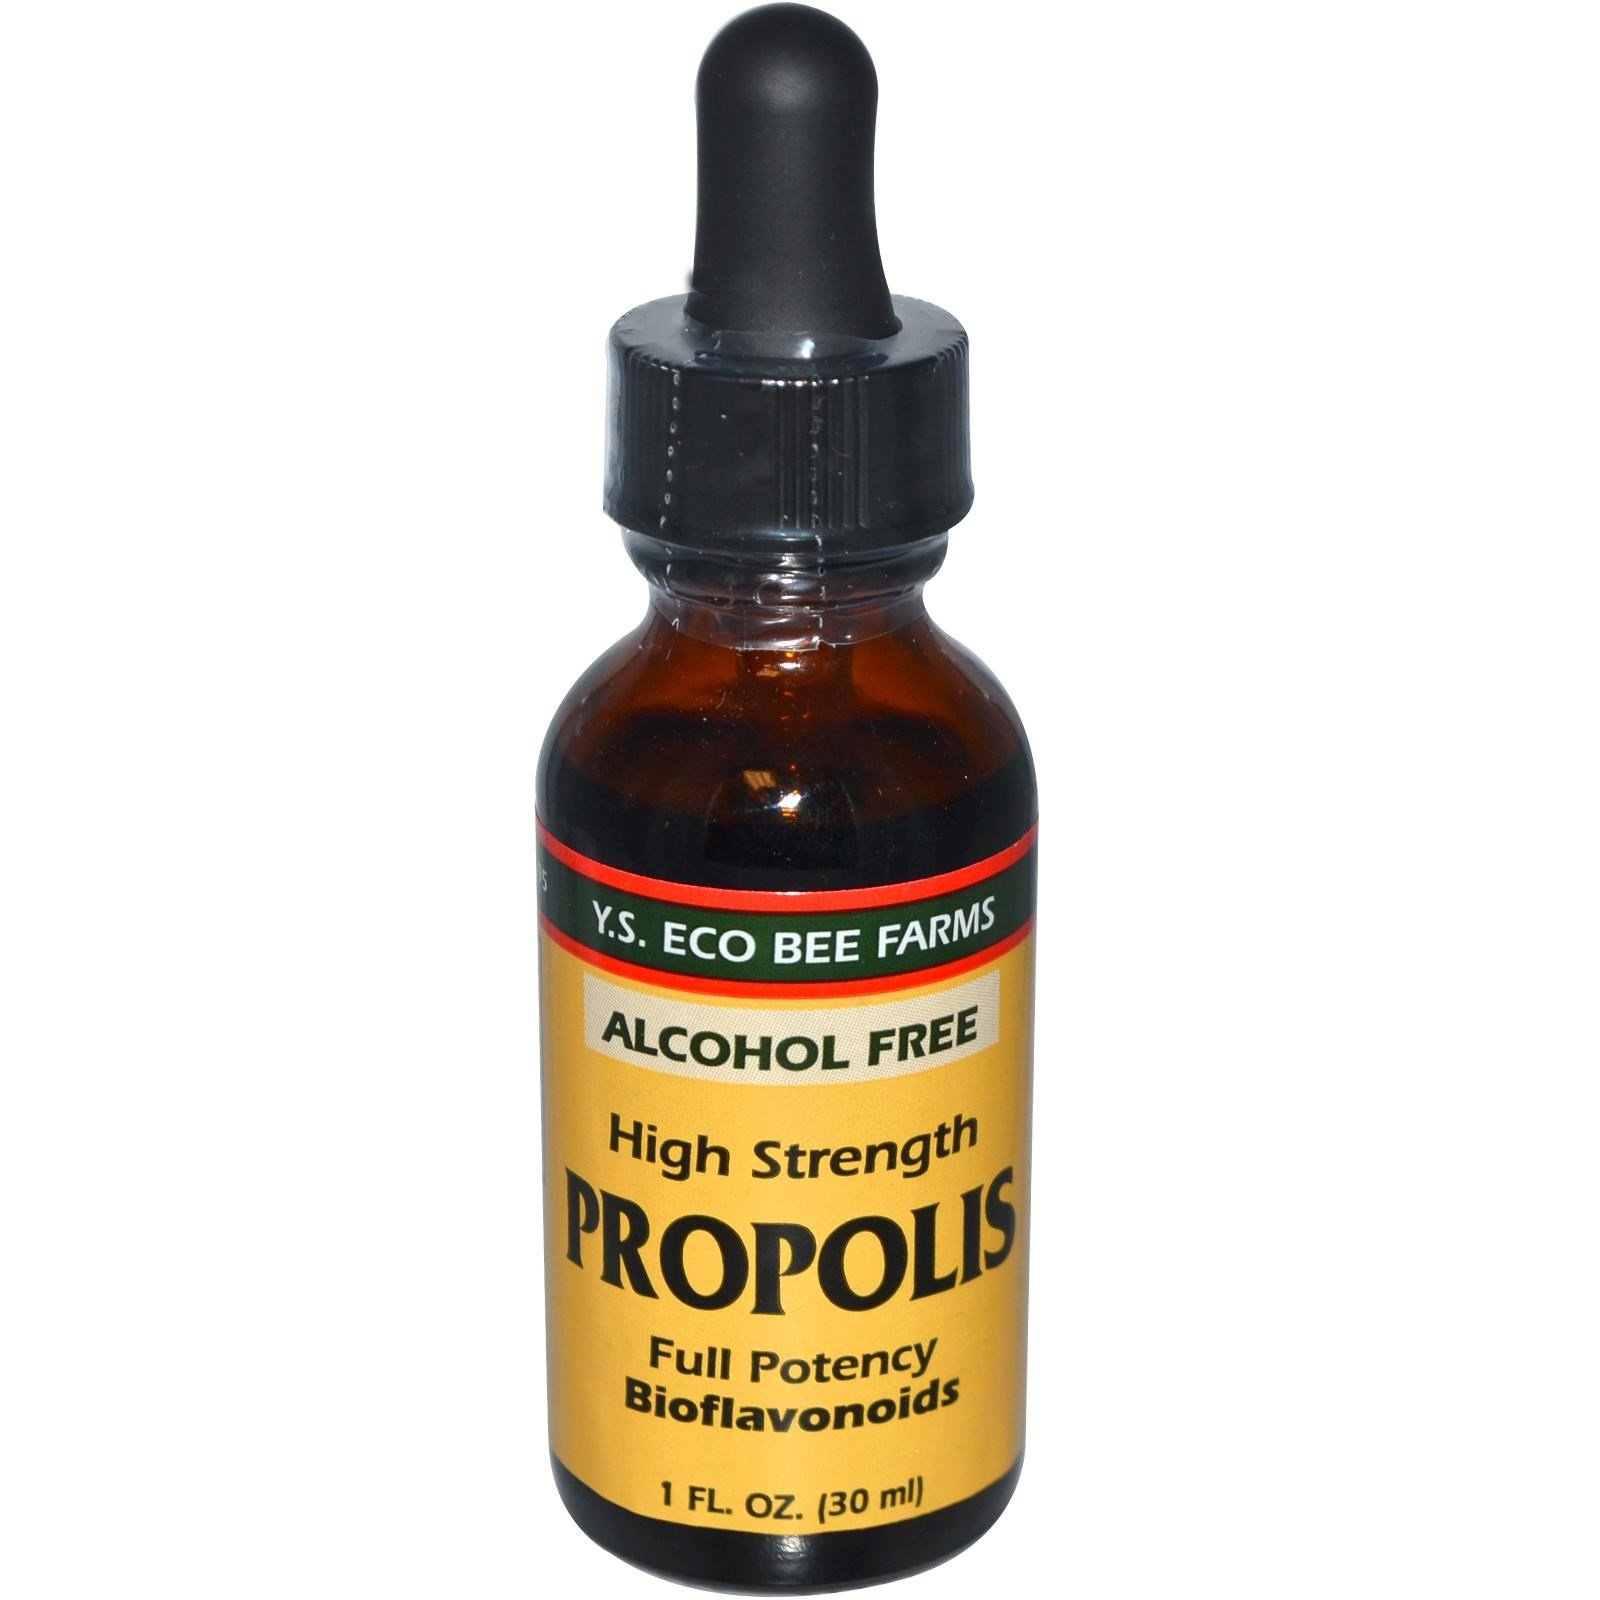 Y.S. Eco Bee Farms High Strength Propolis Alcohol-Free 1 oz (Pack of 3)